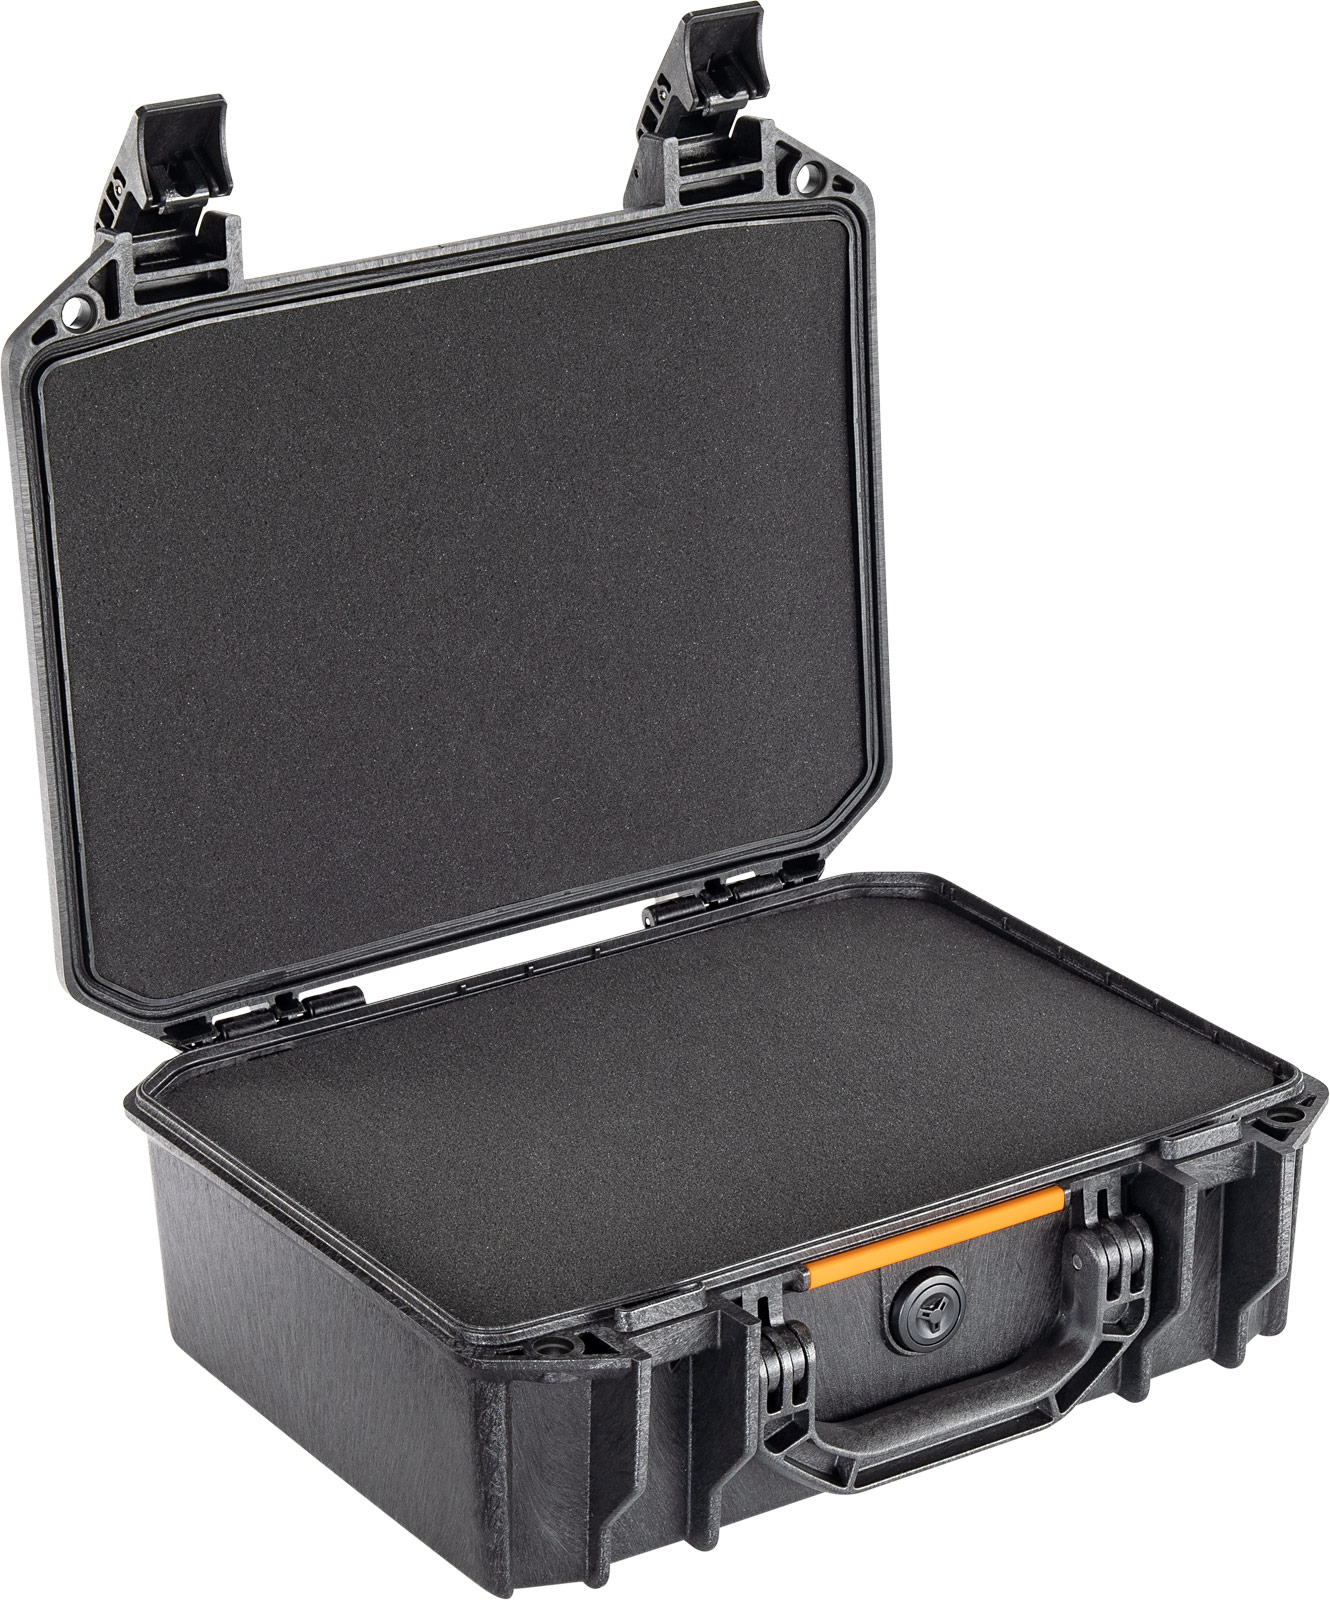 buy vault pelican v200 shop hard case